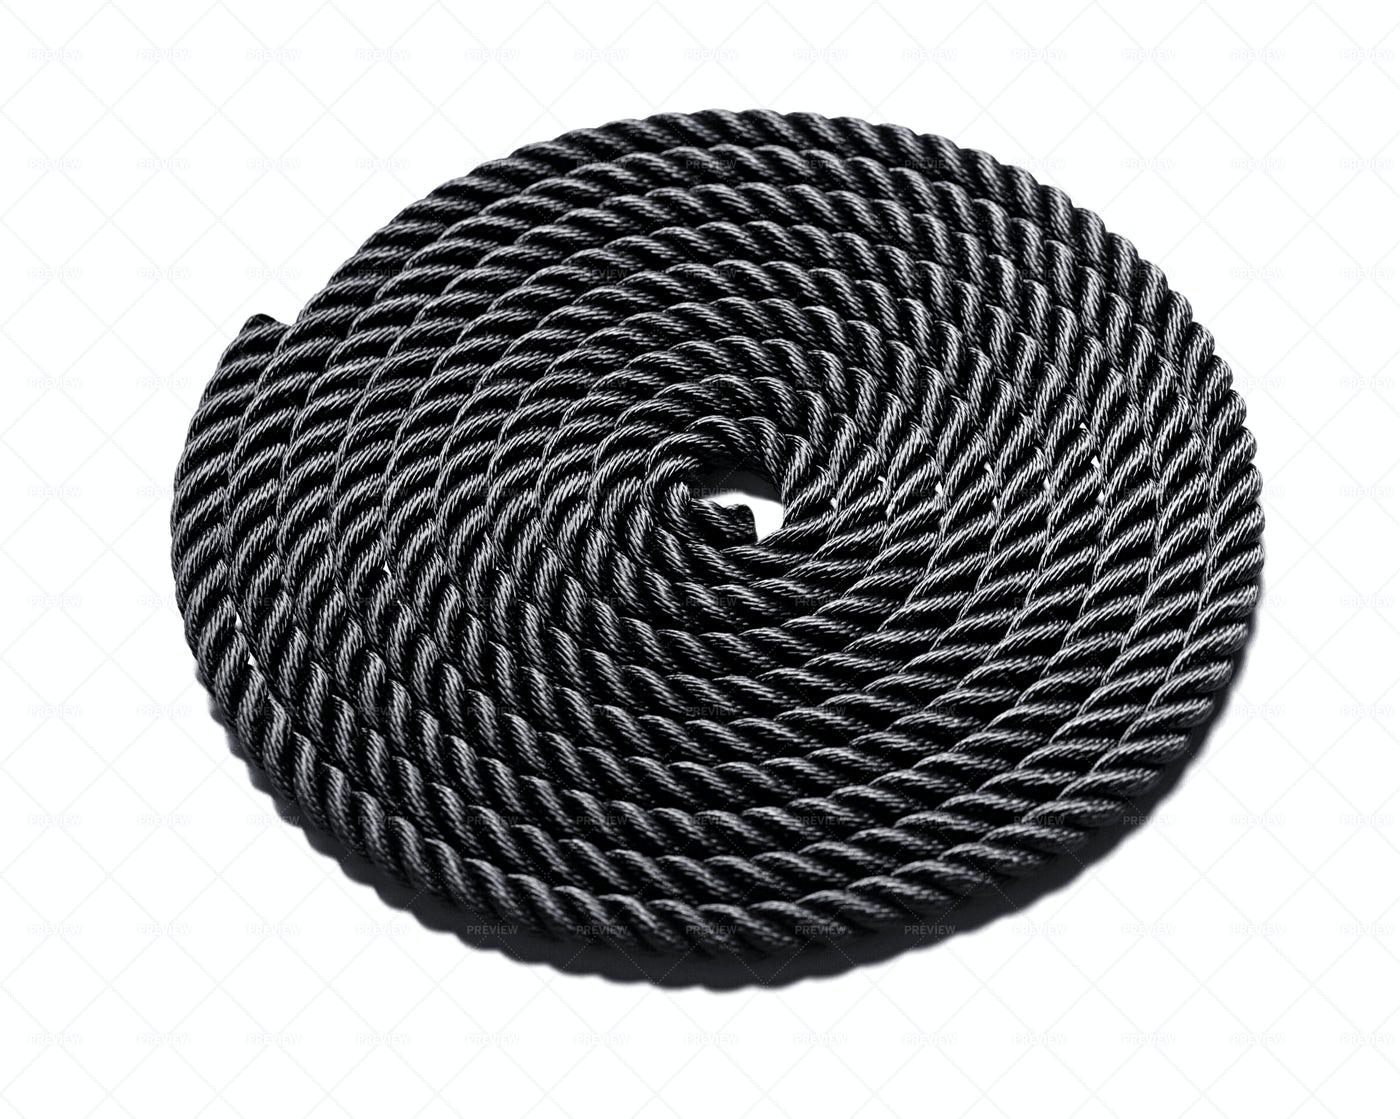 Coiled Black Rope: Stock Photos